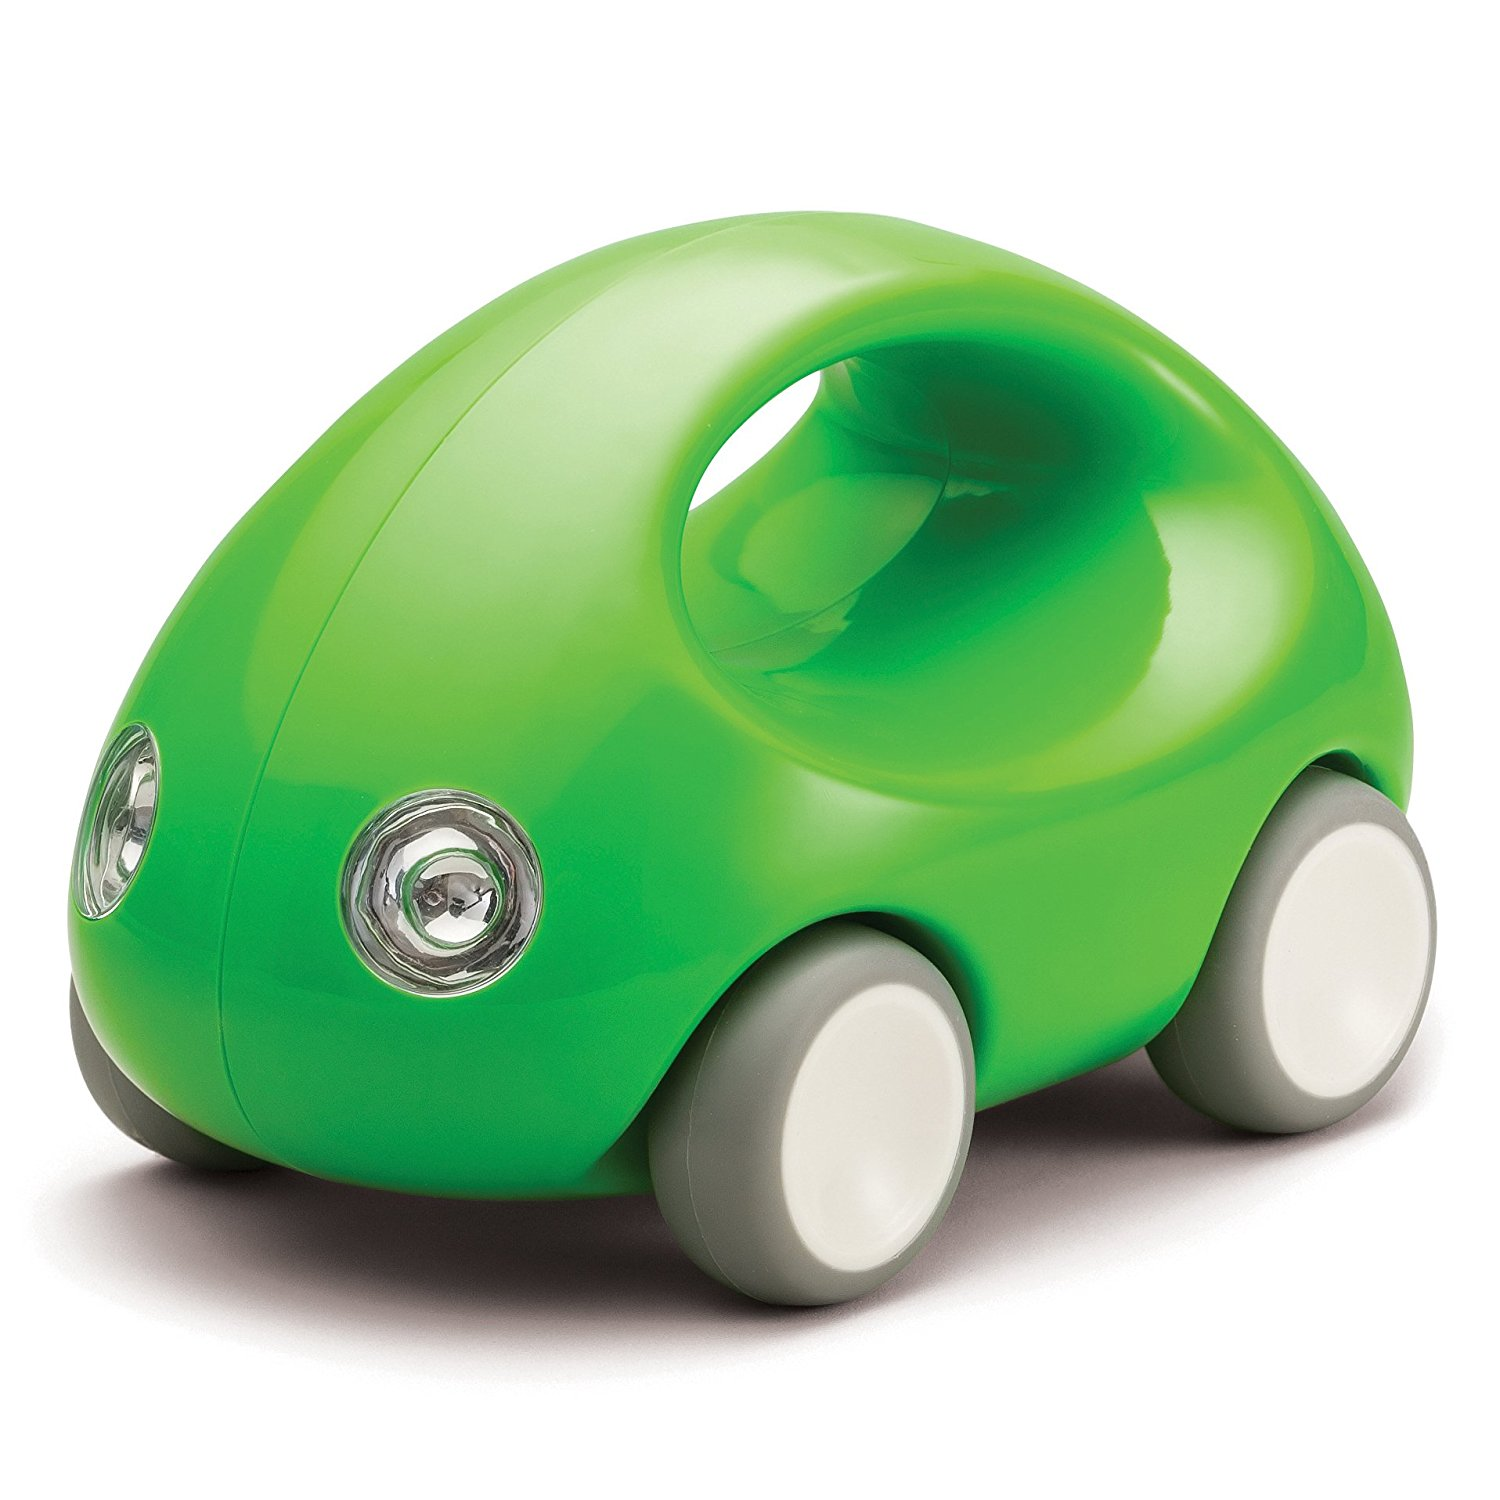 Amazon.com: Kid O Go Car Early Learning Push & Pull Toy - Green ...